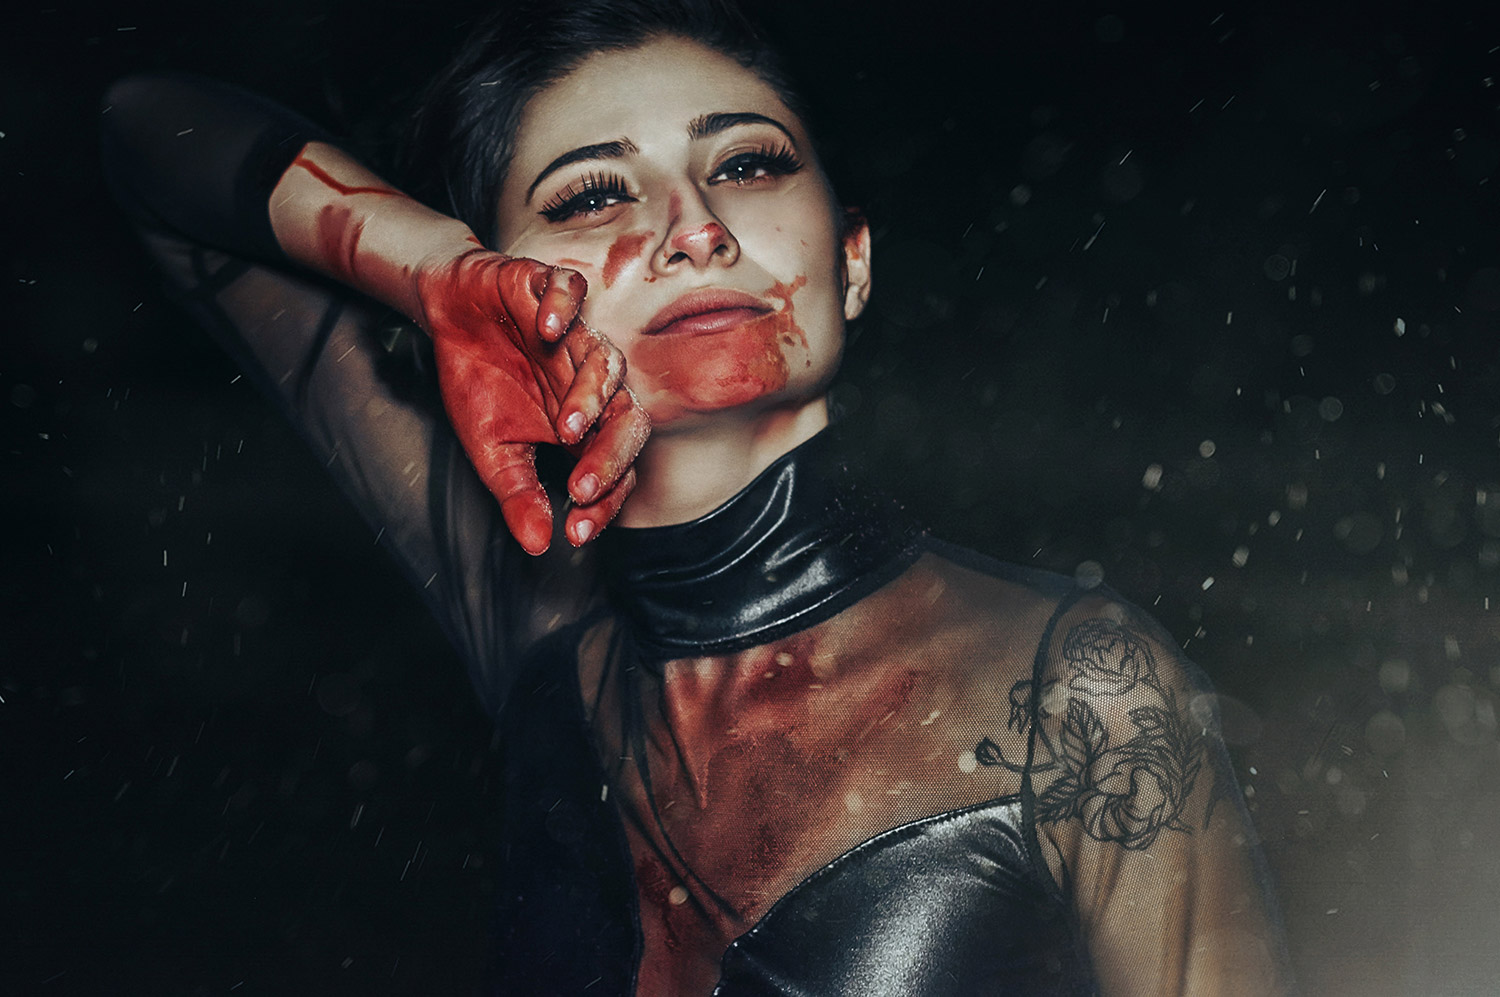 Chris Desabota - Hysteria ft. Gianna Serino and Sami Mitchell - woman wiping face covered in blood